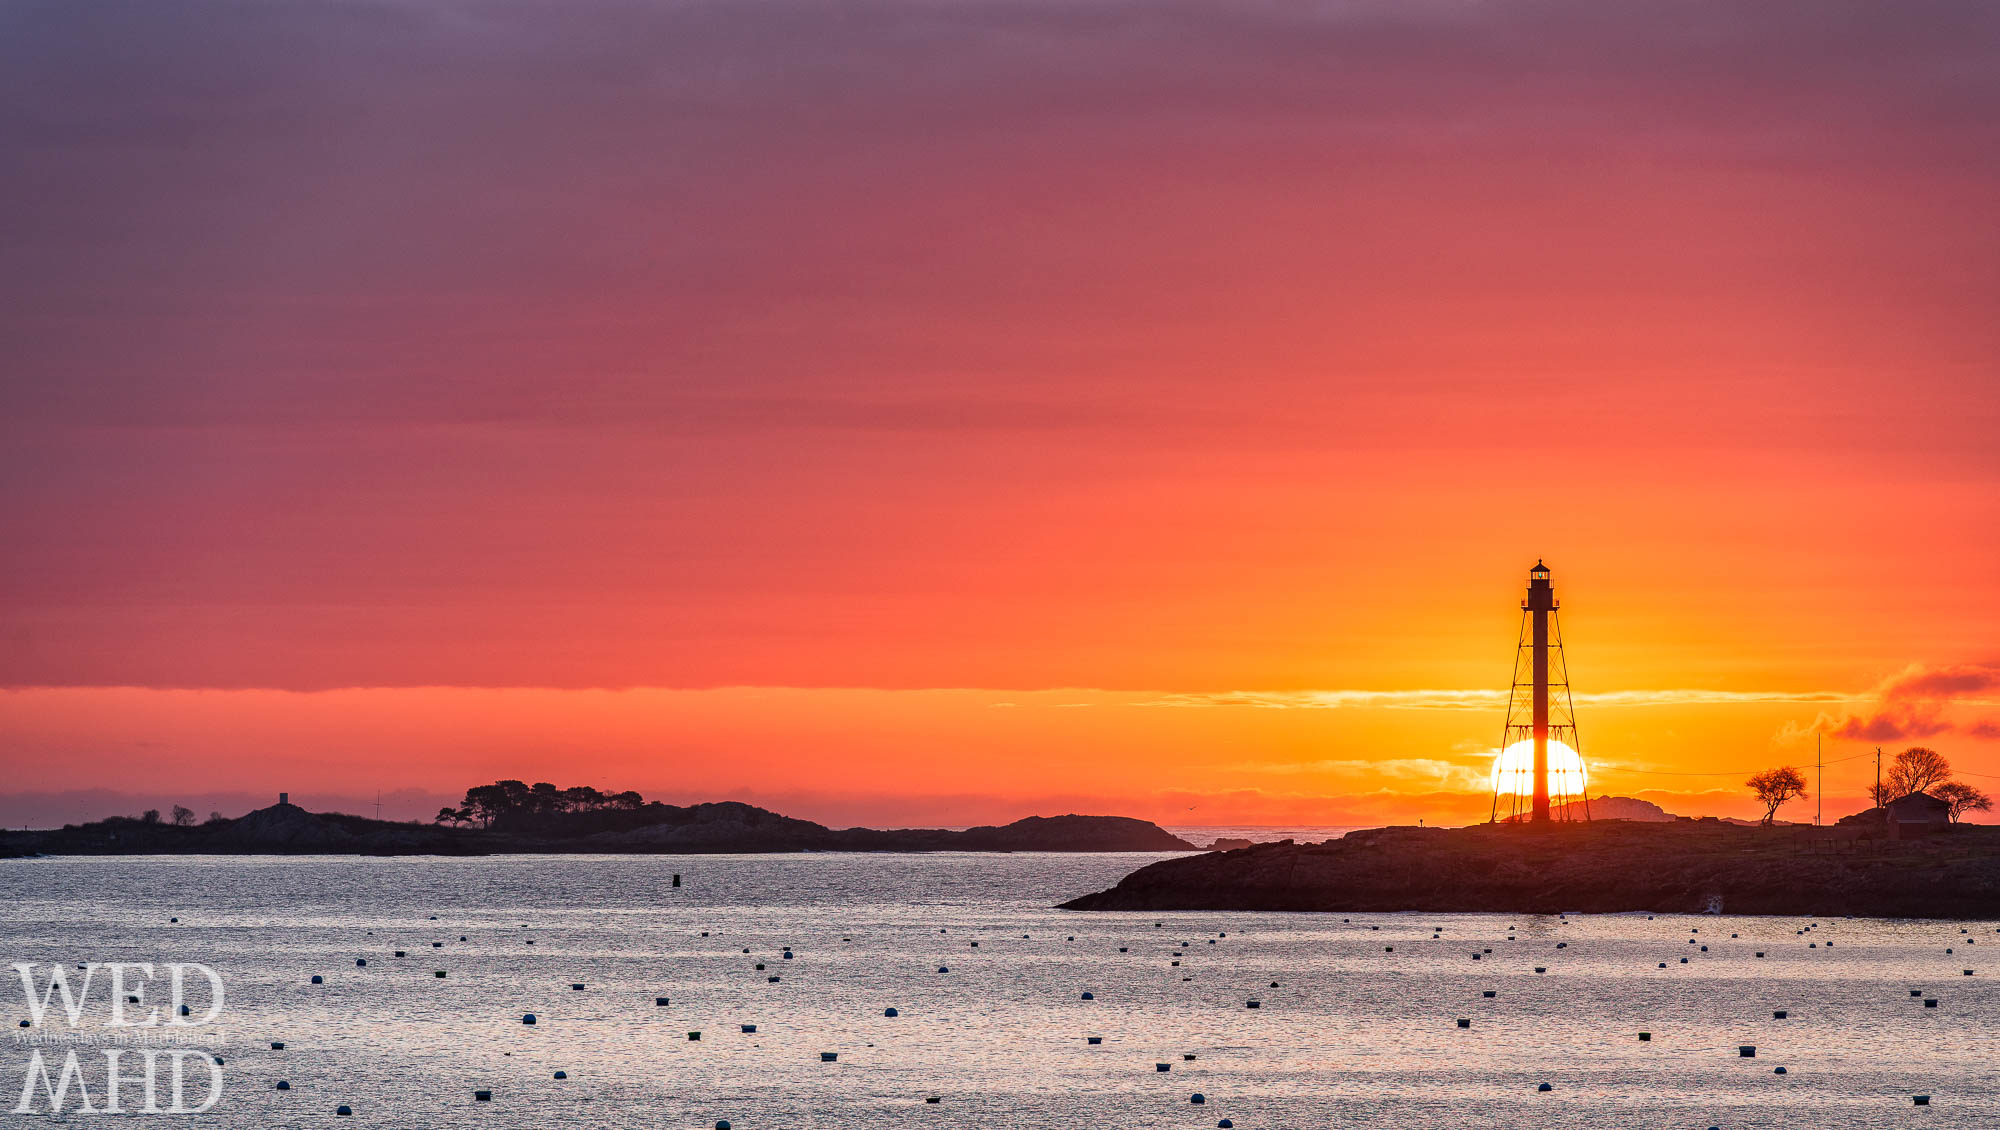 The sun rises behind Marblehead Light and Chandler Hovey Park with Childrens Island visible in the morning glow